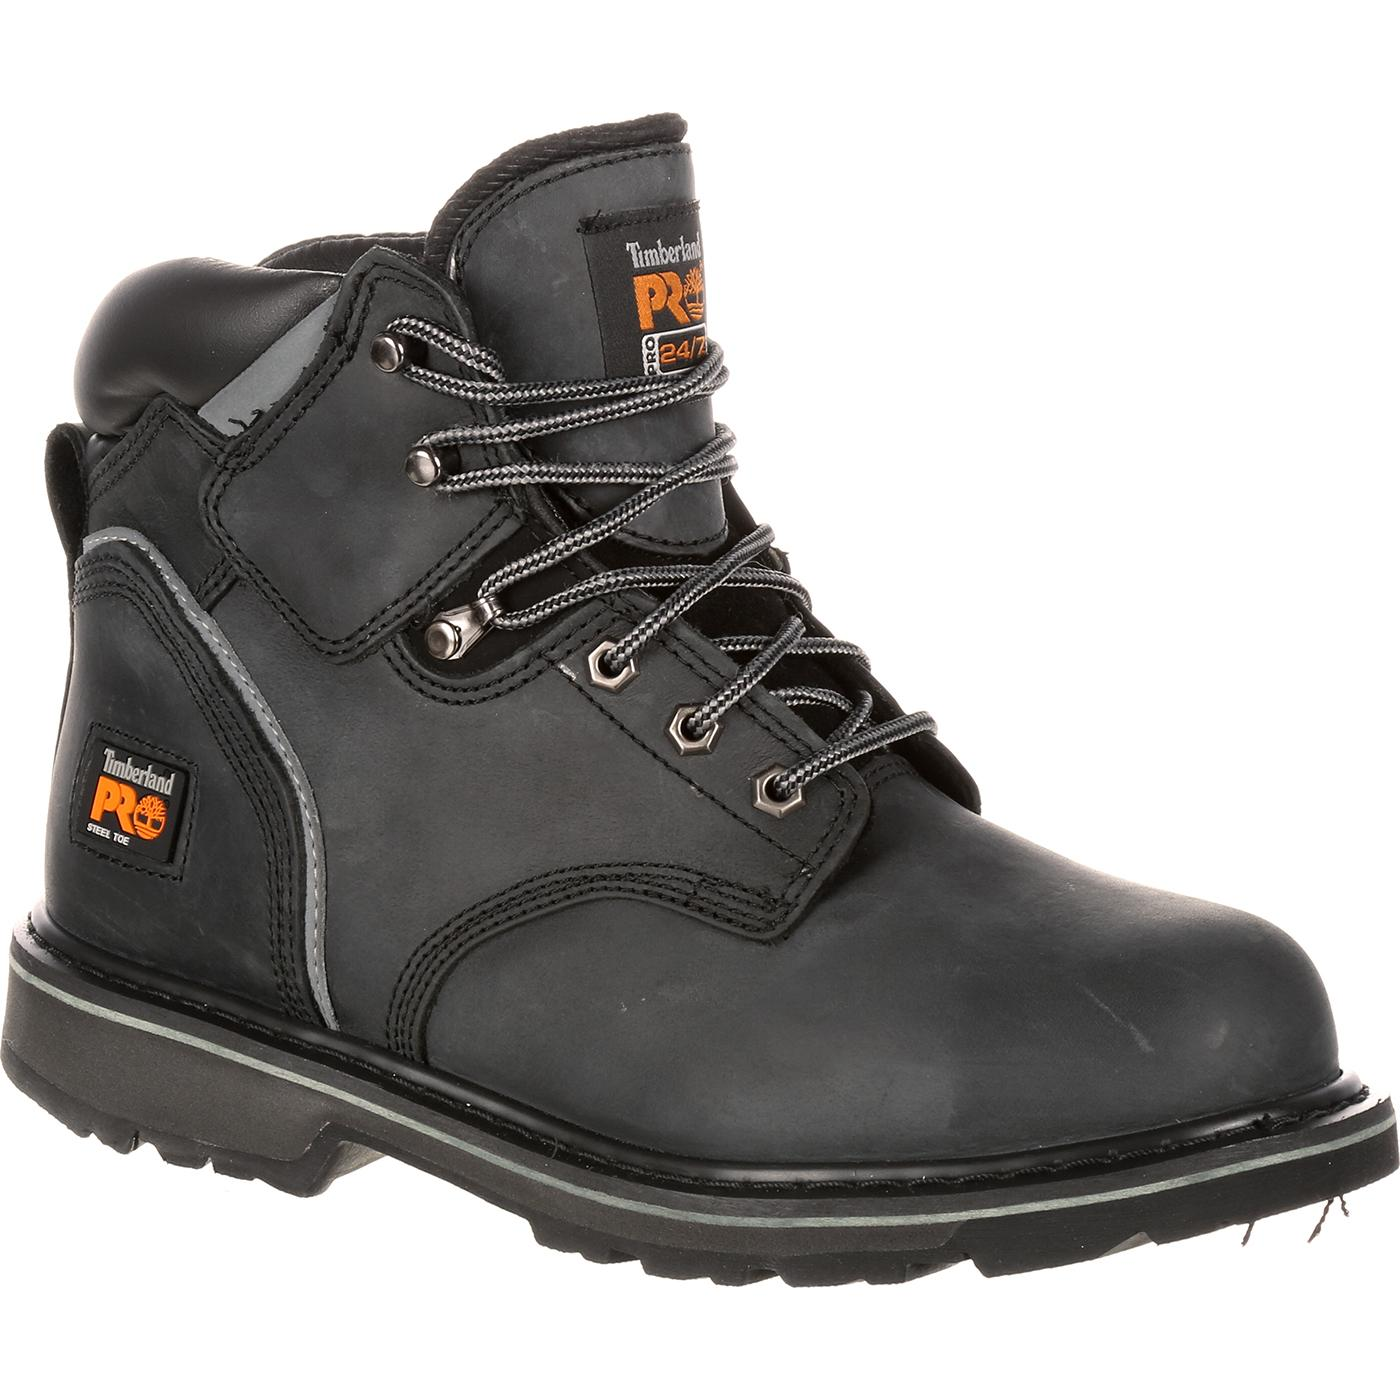 Timberland Pro 6 Inch Sport Work Boot W Oil Resistant 33032